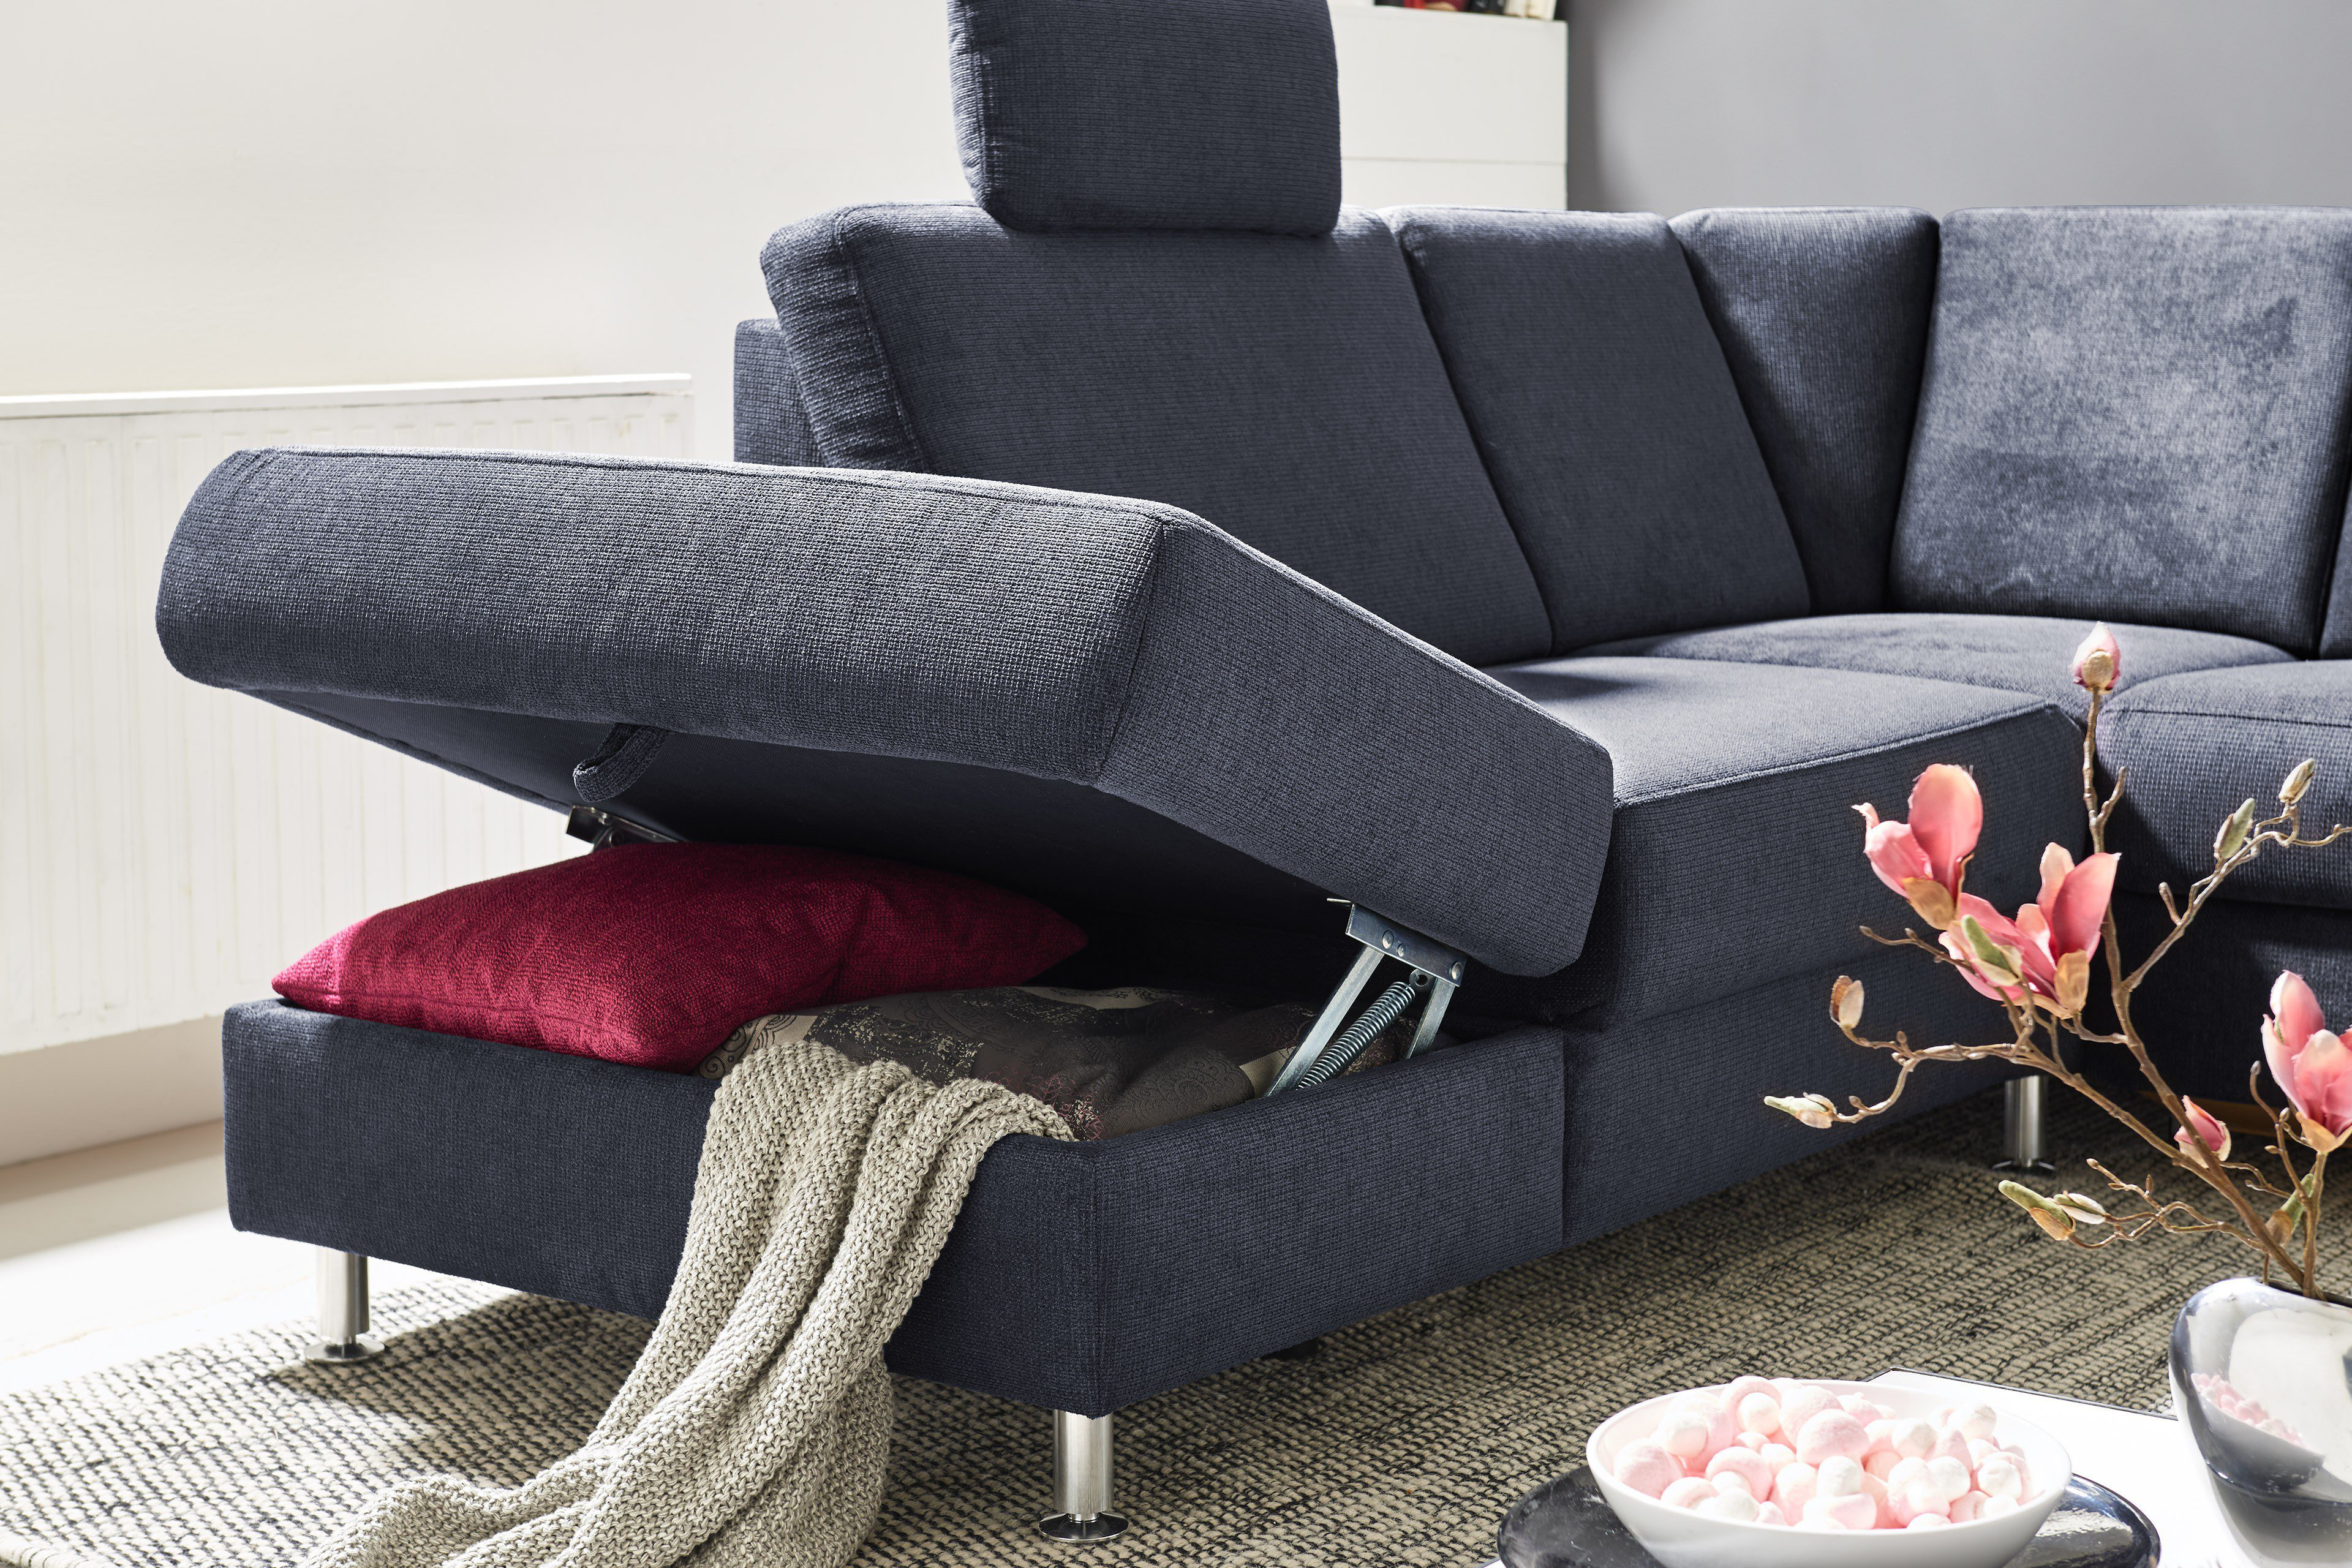 sit more belfort ecksofa schwarz m bel letz ihr. Black Bedroom Furniture Sets. Home Design Ideas